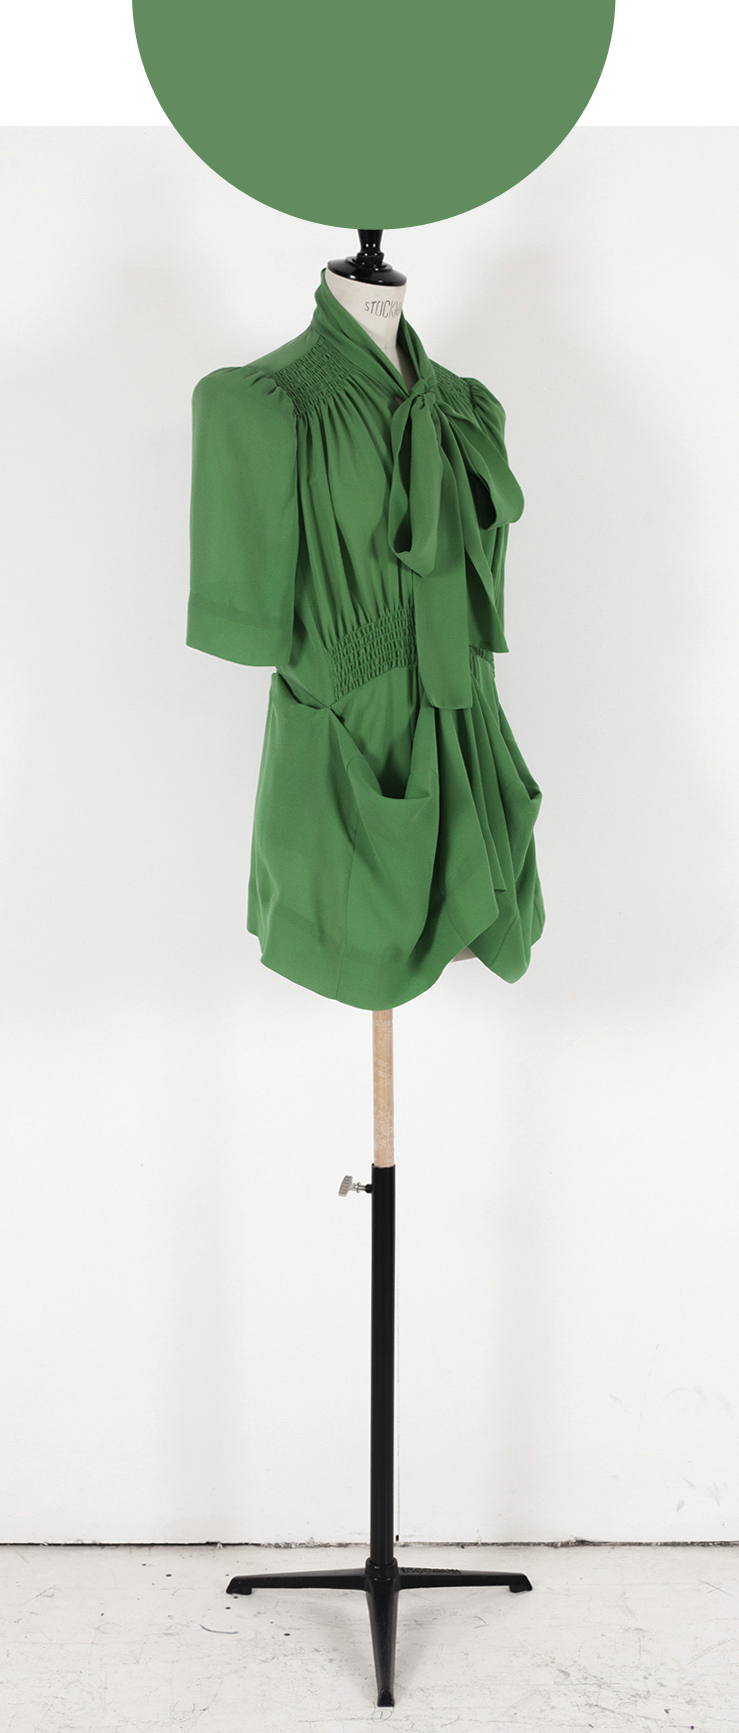 02 BRIGHT GREEN/ Short Sleeve, Adaptor Blouse/Knee length Dress